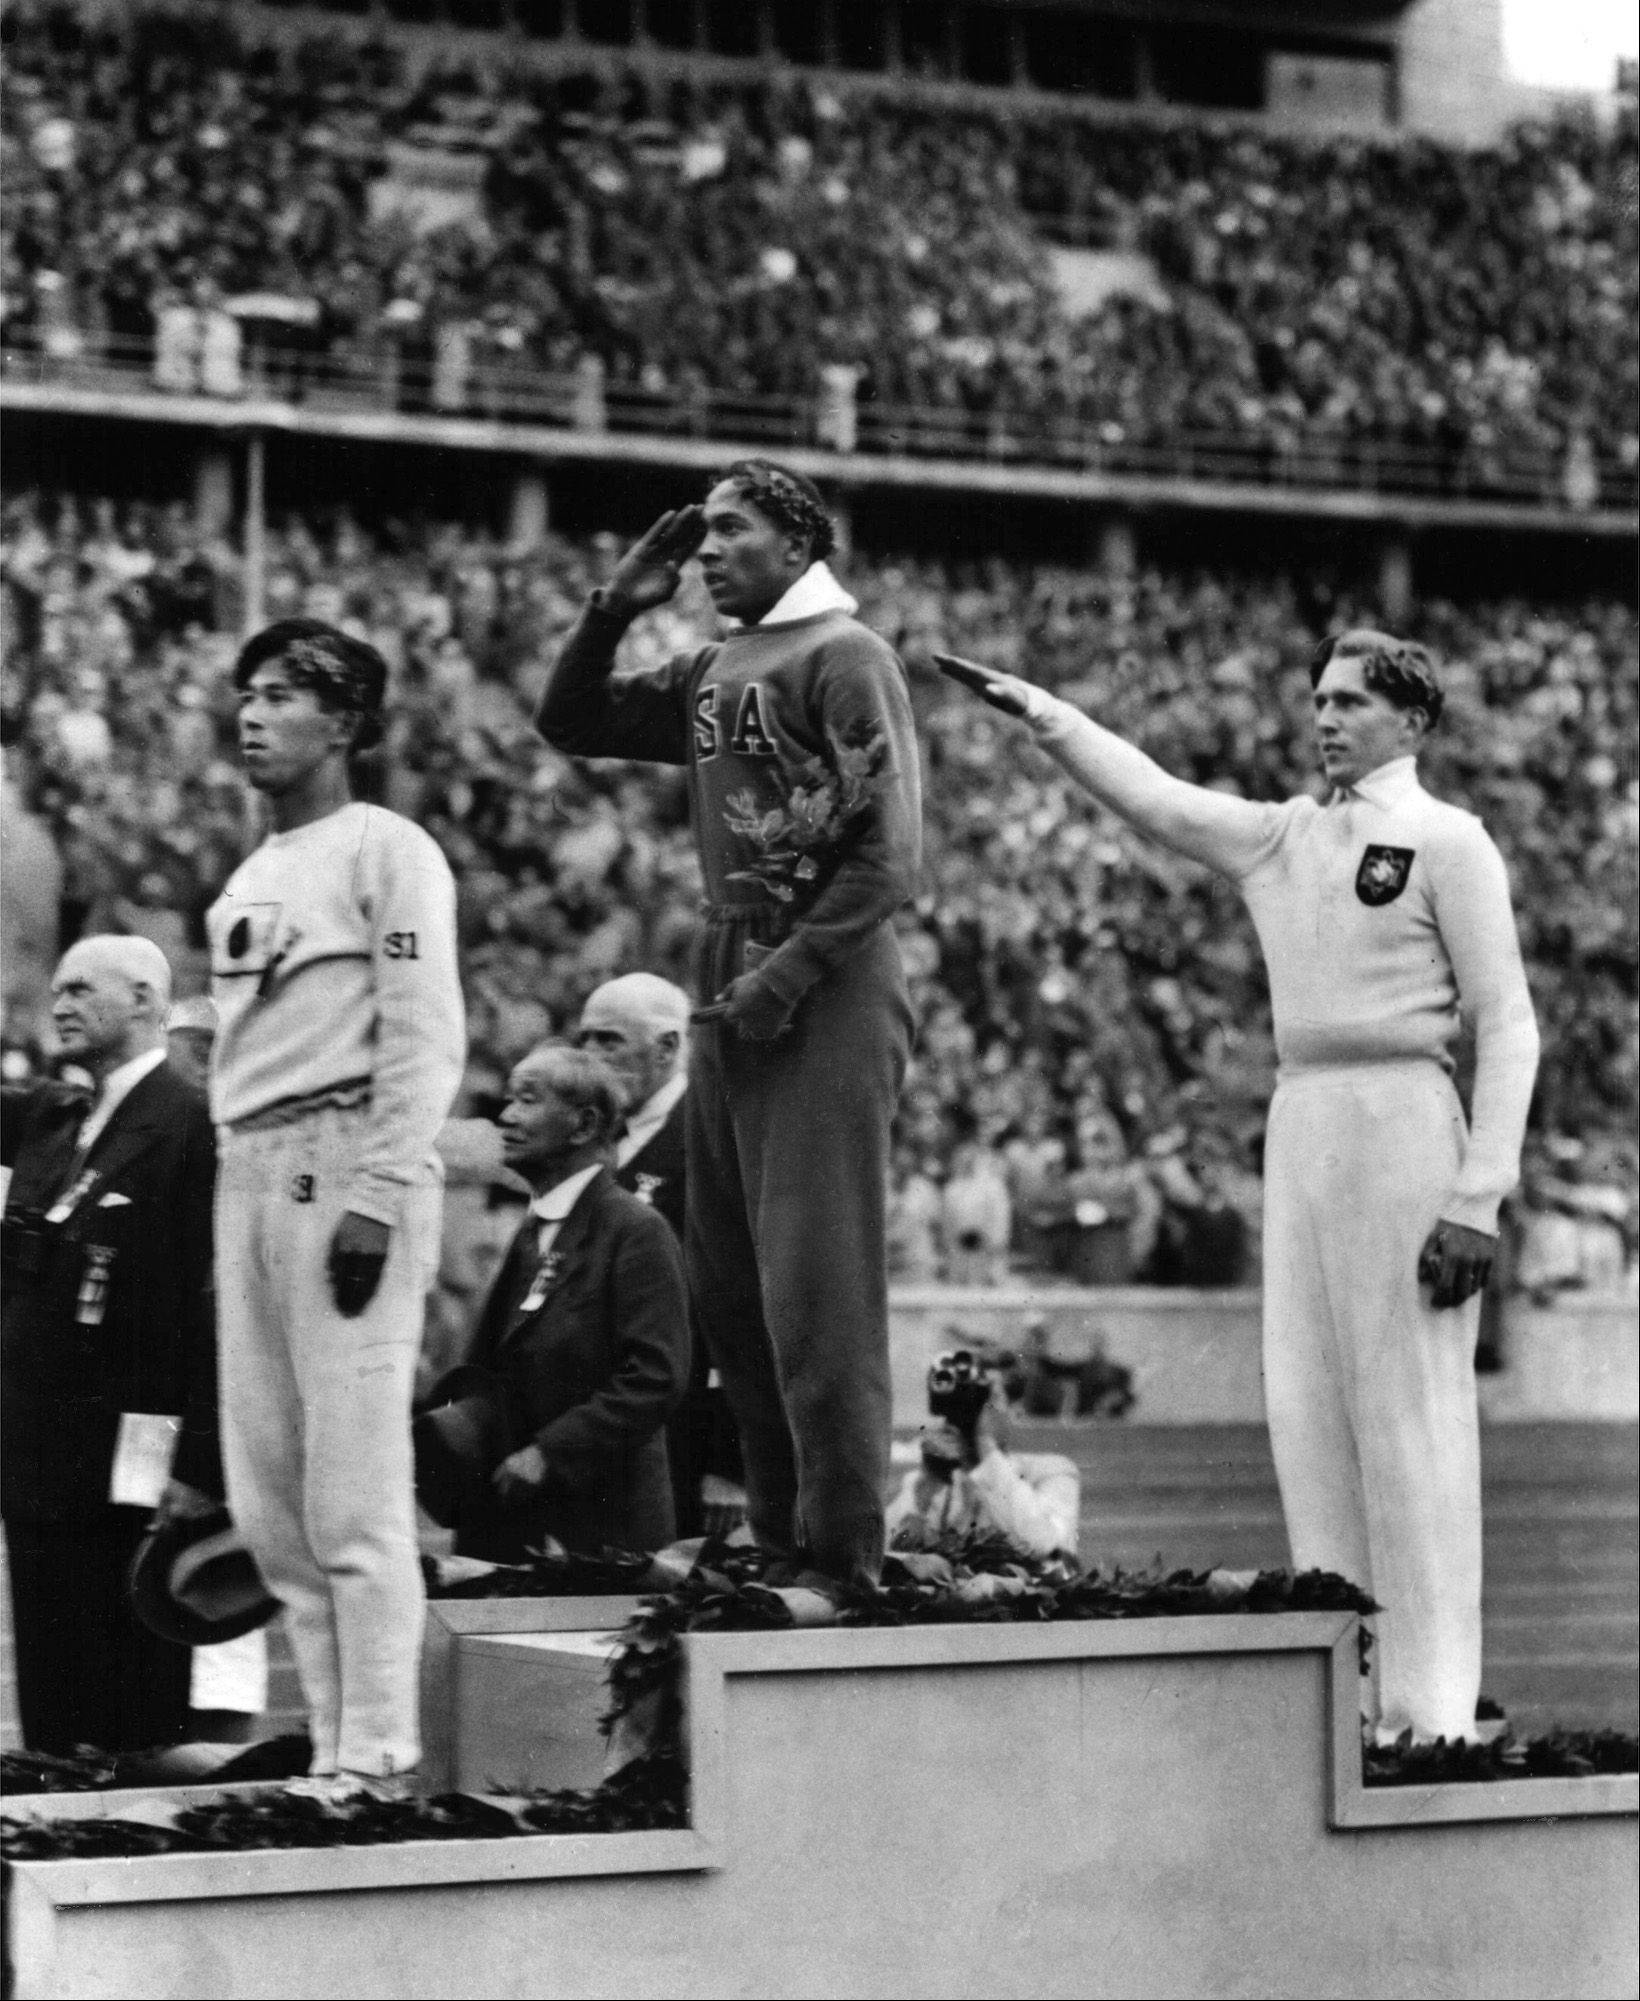 America's Jesse Owens, center, salutes during the presentation of his gold medal for the long jump on August 11, 1936, after defeating Nazi Germany's Lutz Long, right, during the 1936 Summer Olympics in Berlin. Naoto Tajima of Japan, left, placed third. Owens triumphed in the track and field competition by winning four gold medals in the 100-meter and 200-meter dashes, long jump and 400-meter relay. He was the first athlete to win four gold medals at a single Olympic Games.